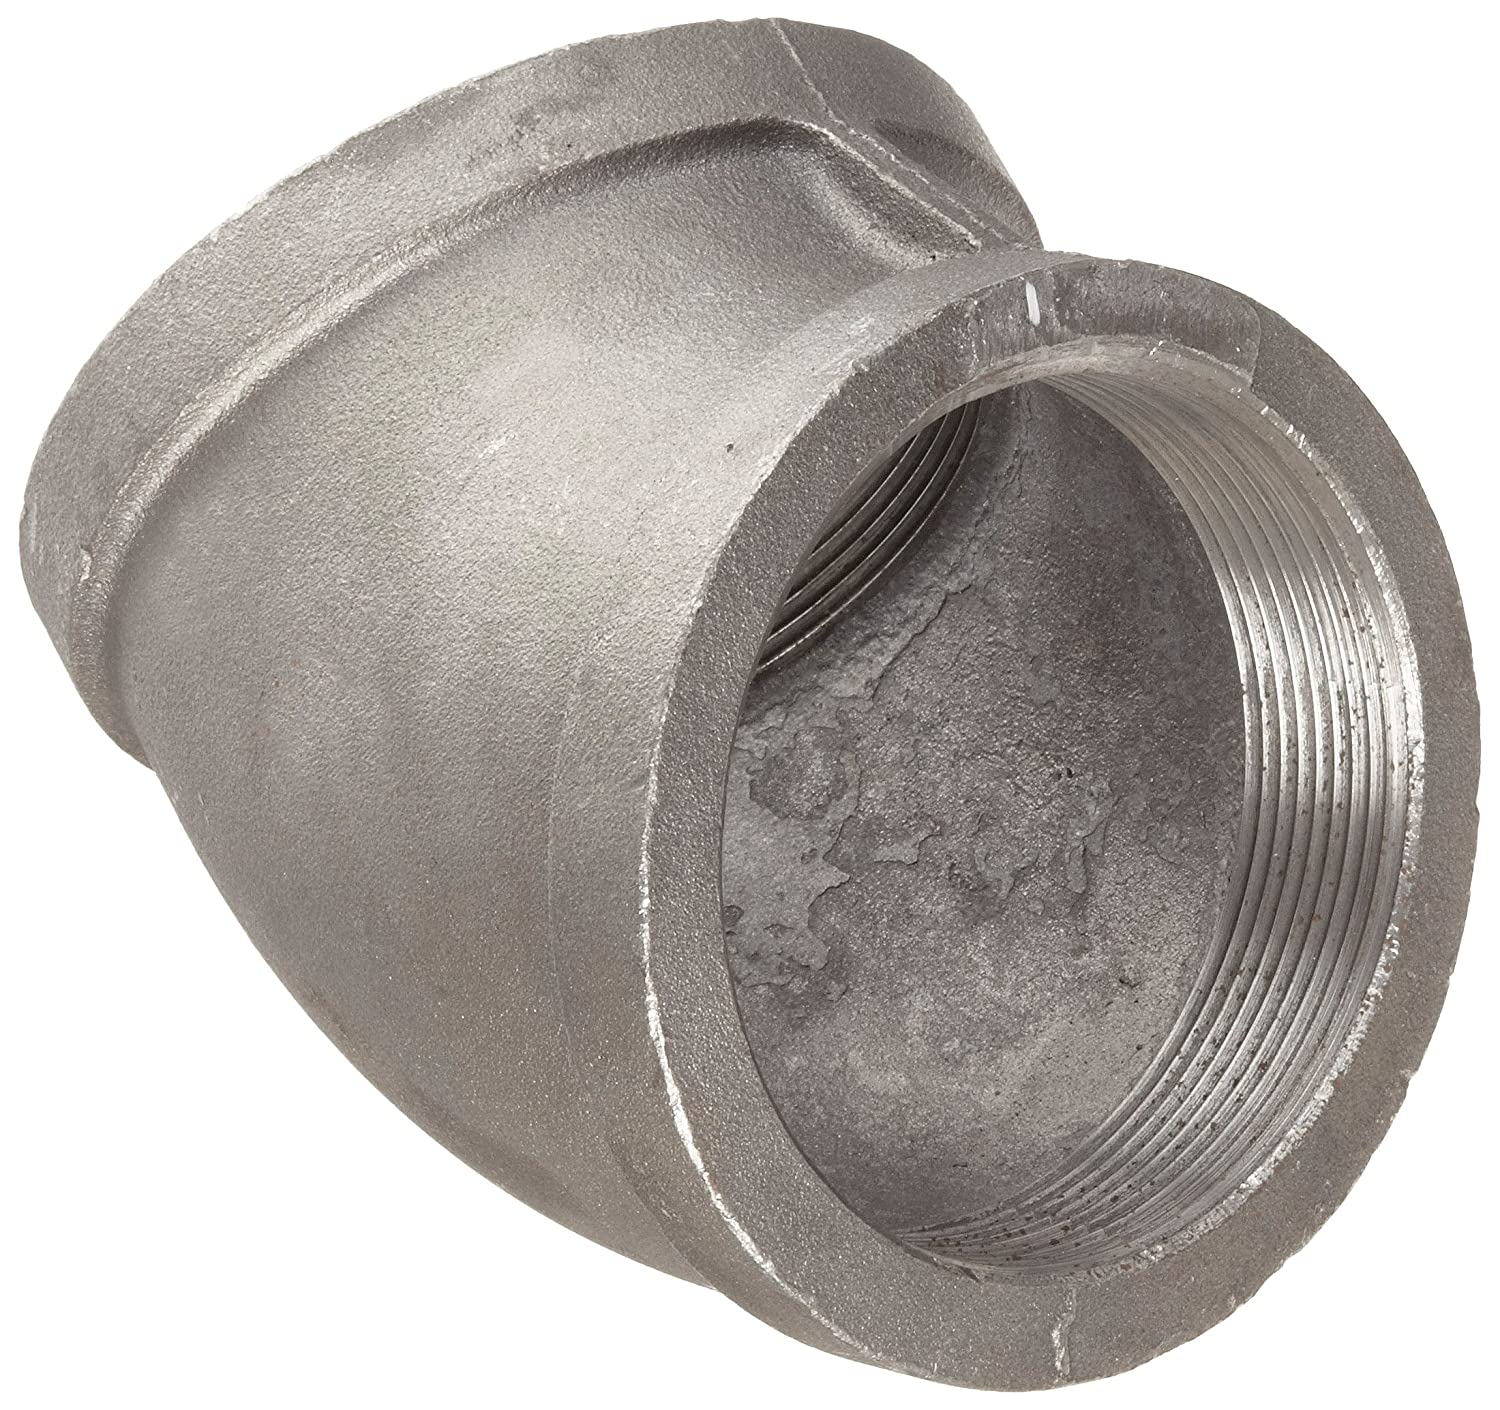 Black Finish Malleable Iron Pipe Fitting 45 Degree Elbow 1 NPT Female Anvil 8700126256